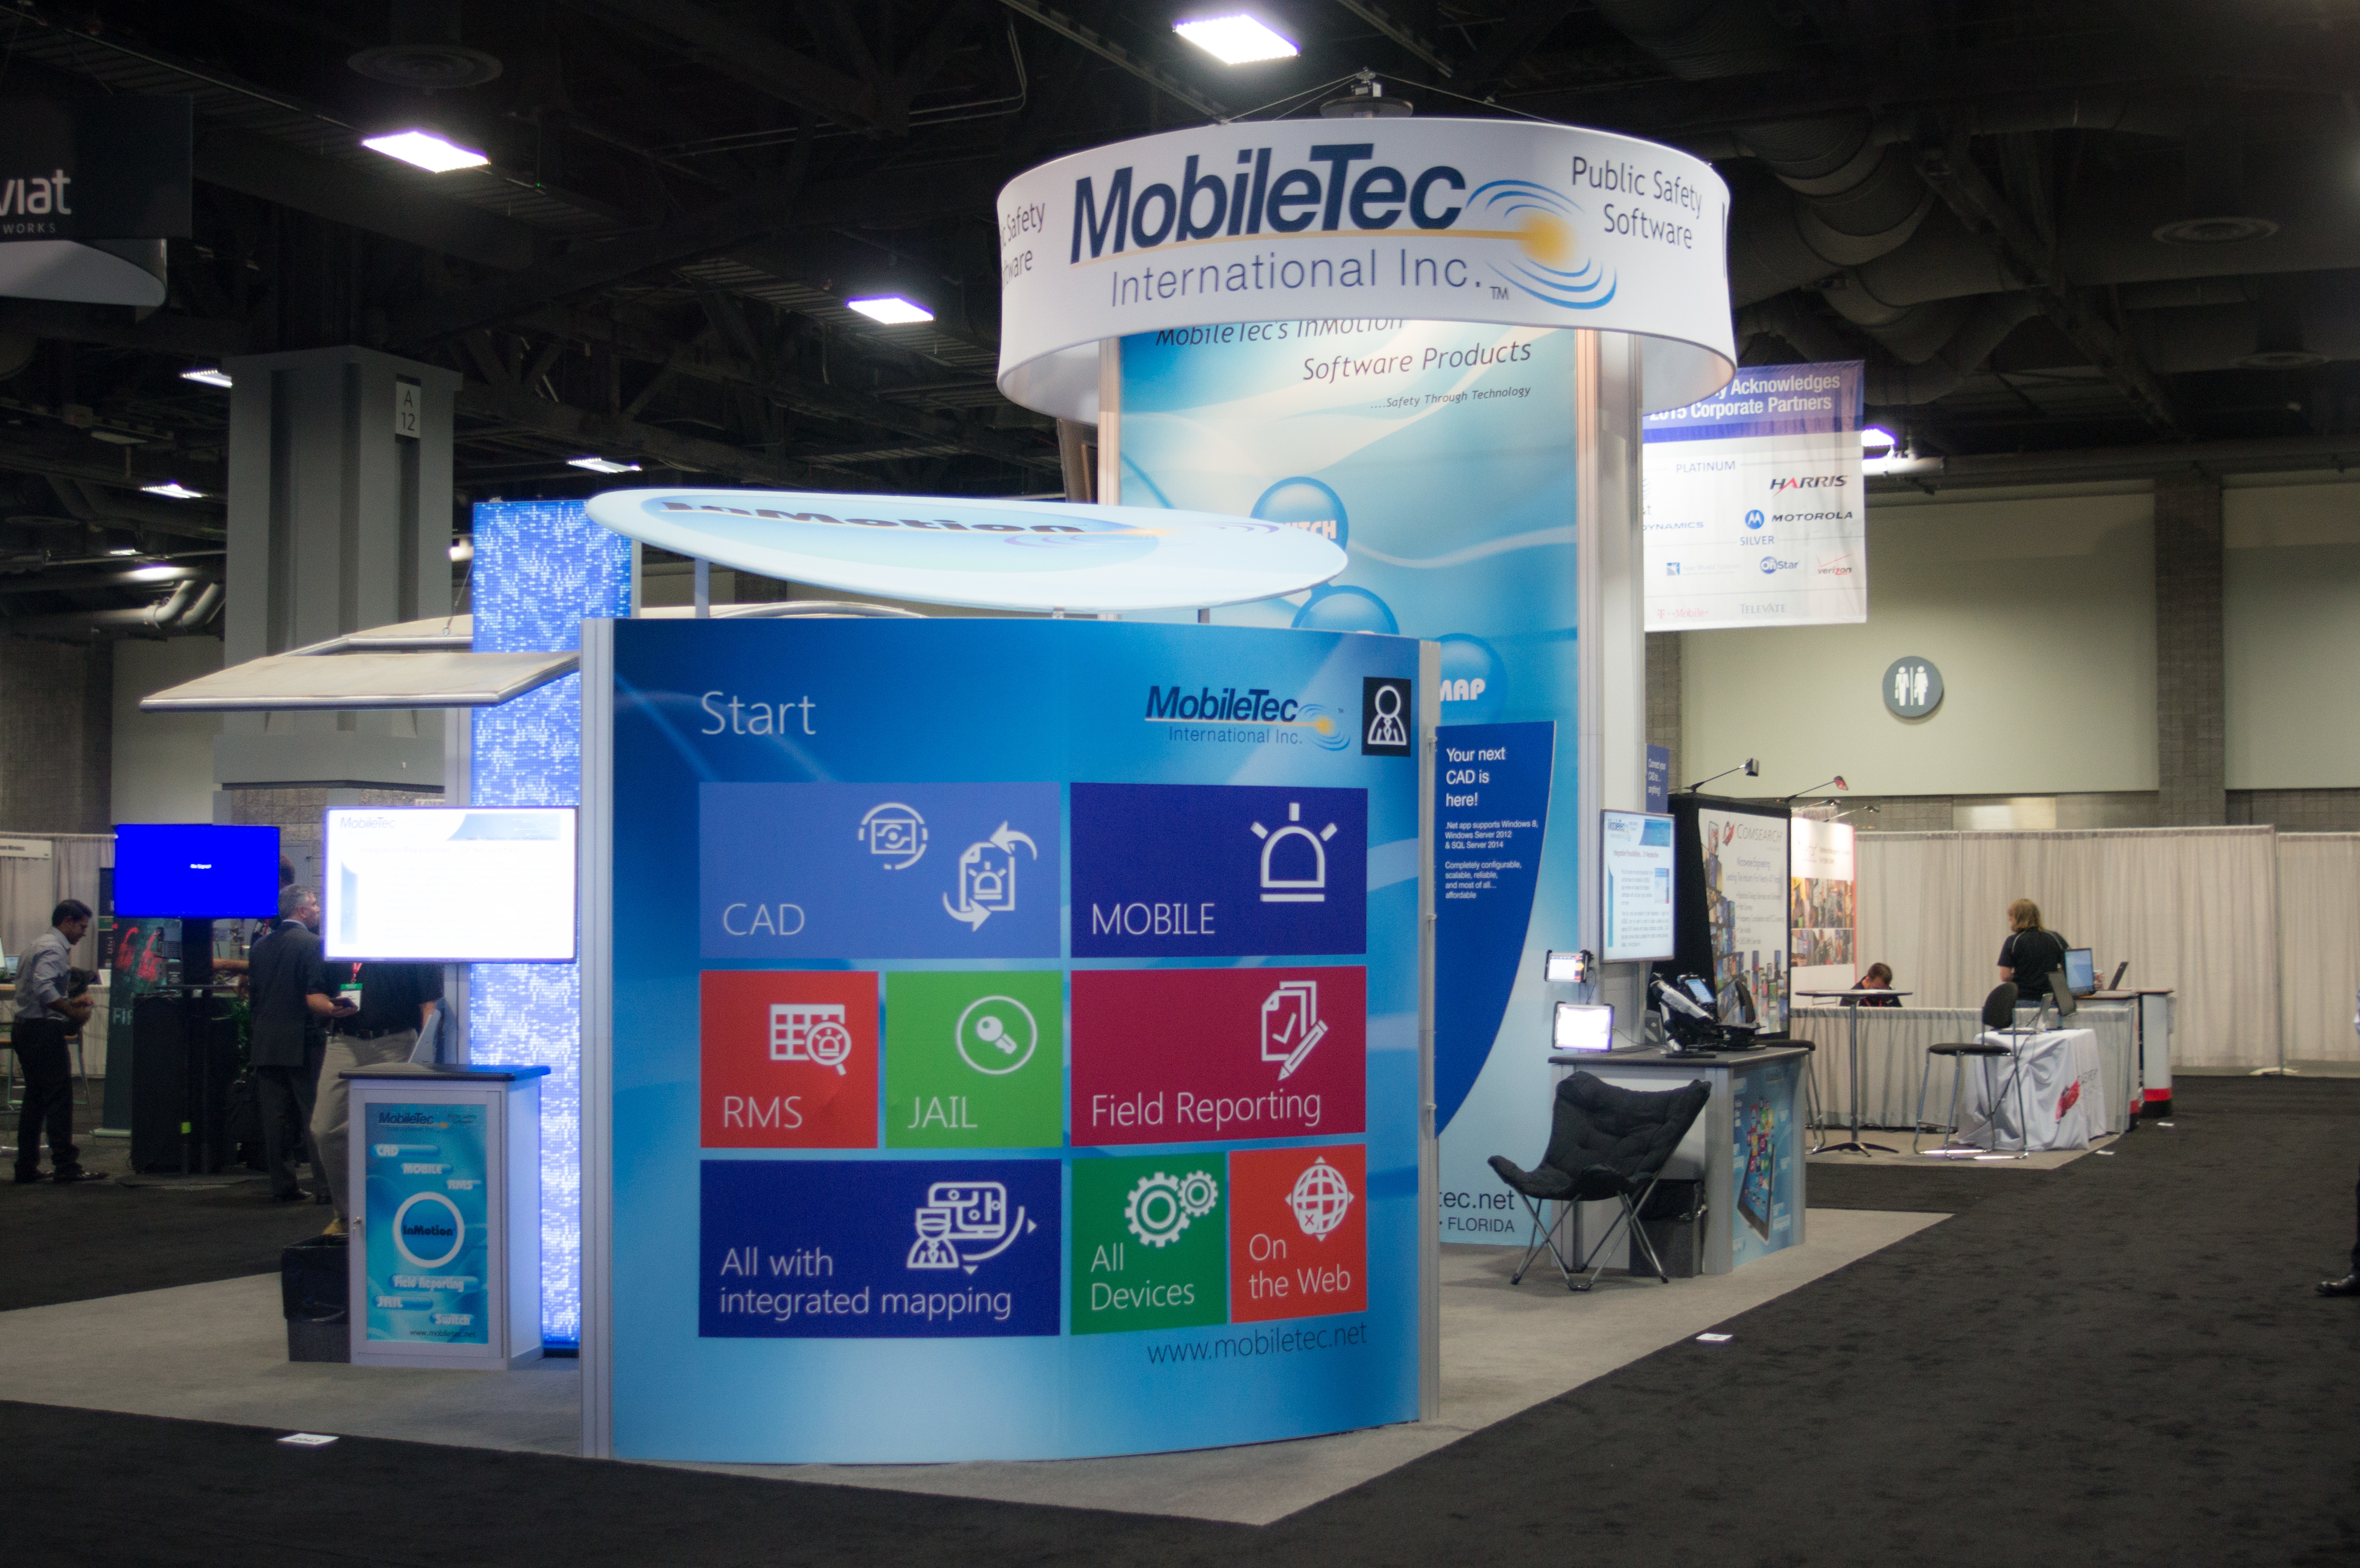 MobileTec International, Inc. image 1